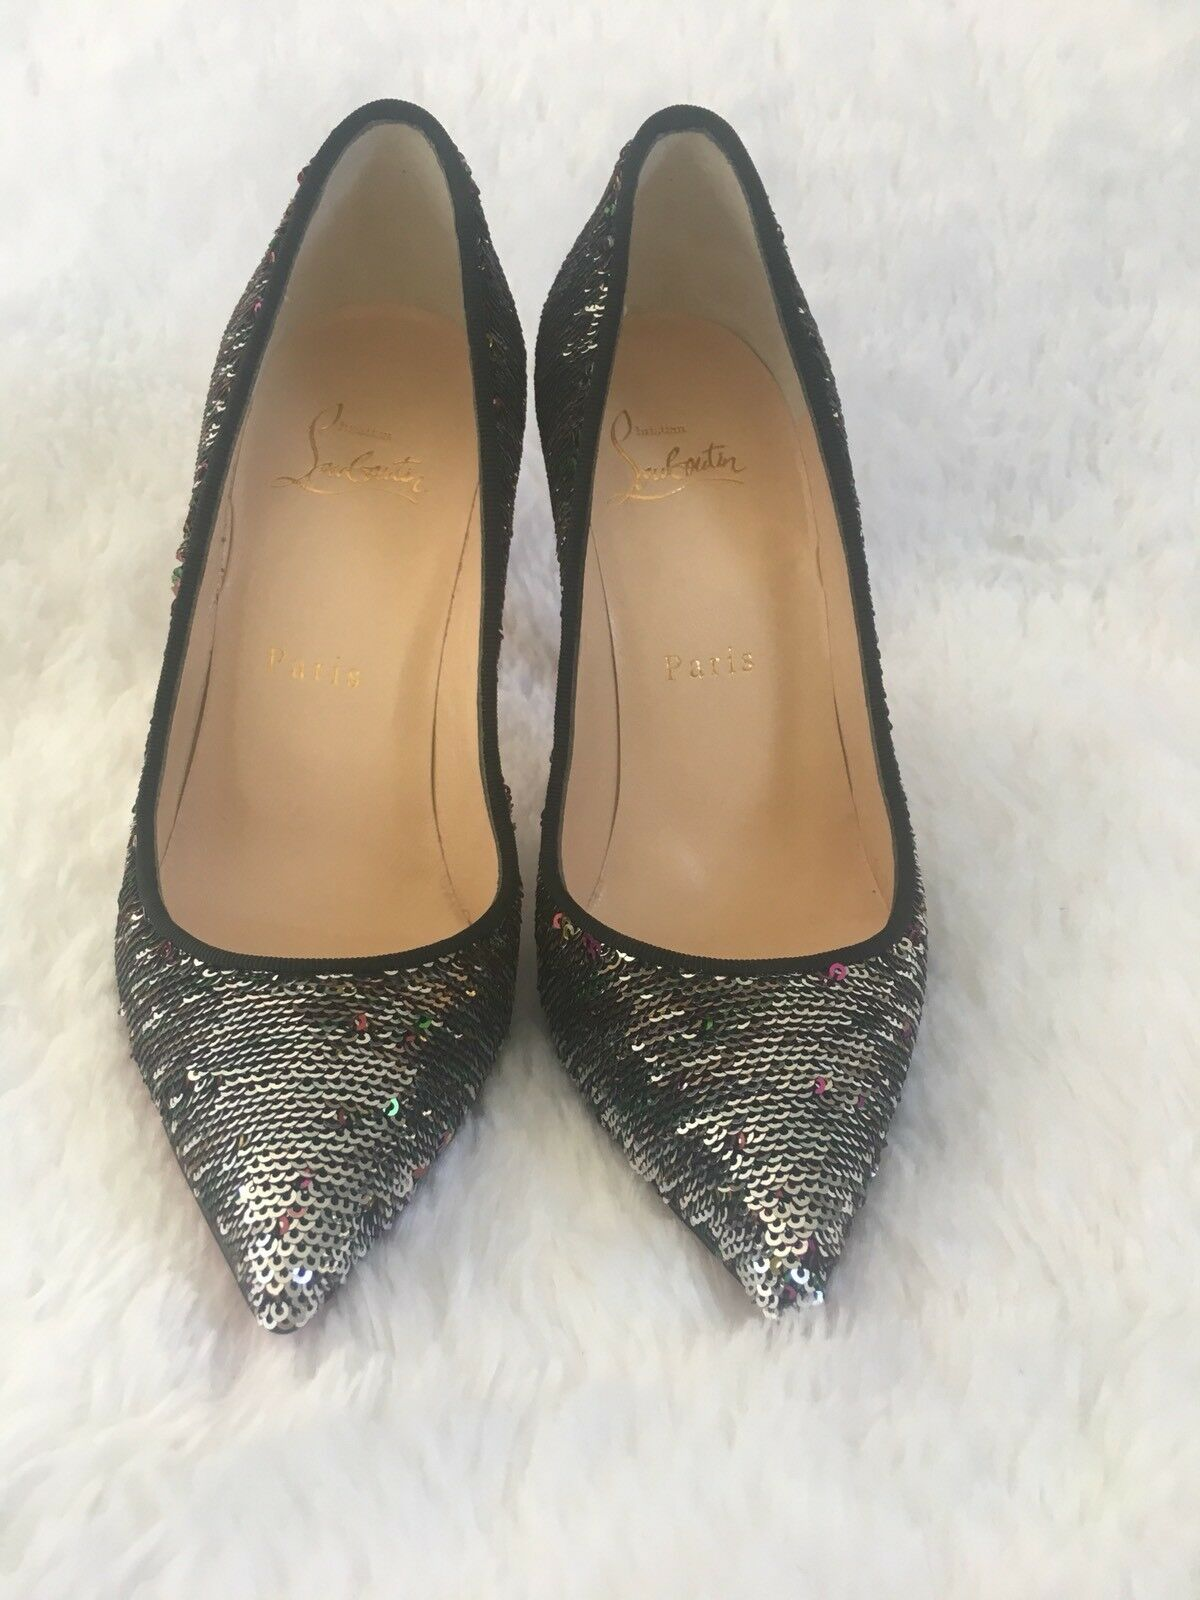 Christian Louboutin Pigalle Follies 100 Pailletes Caresse Caresse Caresse Sequin Pumps 36  745 ec48c5